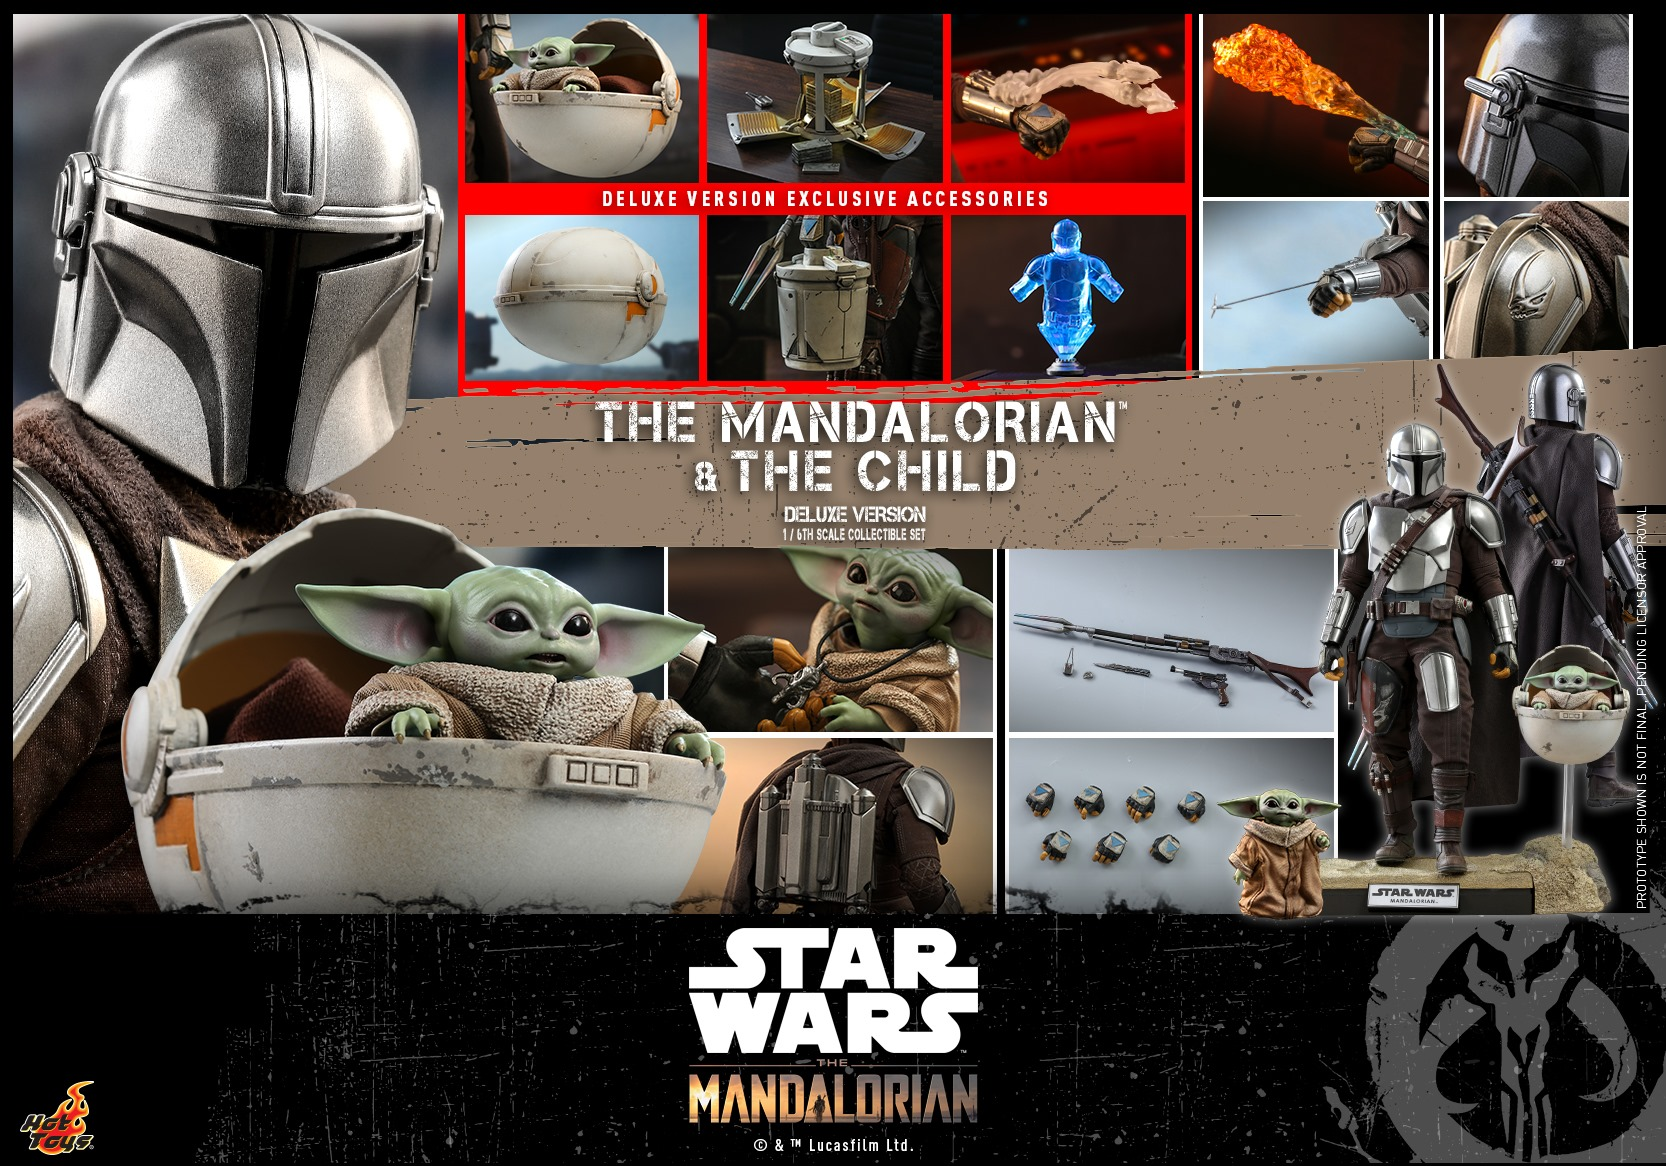 Hot Toys The Mandalorian & <a href='/personnage-9242-the-child.html' class='qtip_motcle' tt_type='personnage' tt_id=9242>The Child</a> DX